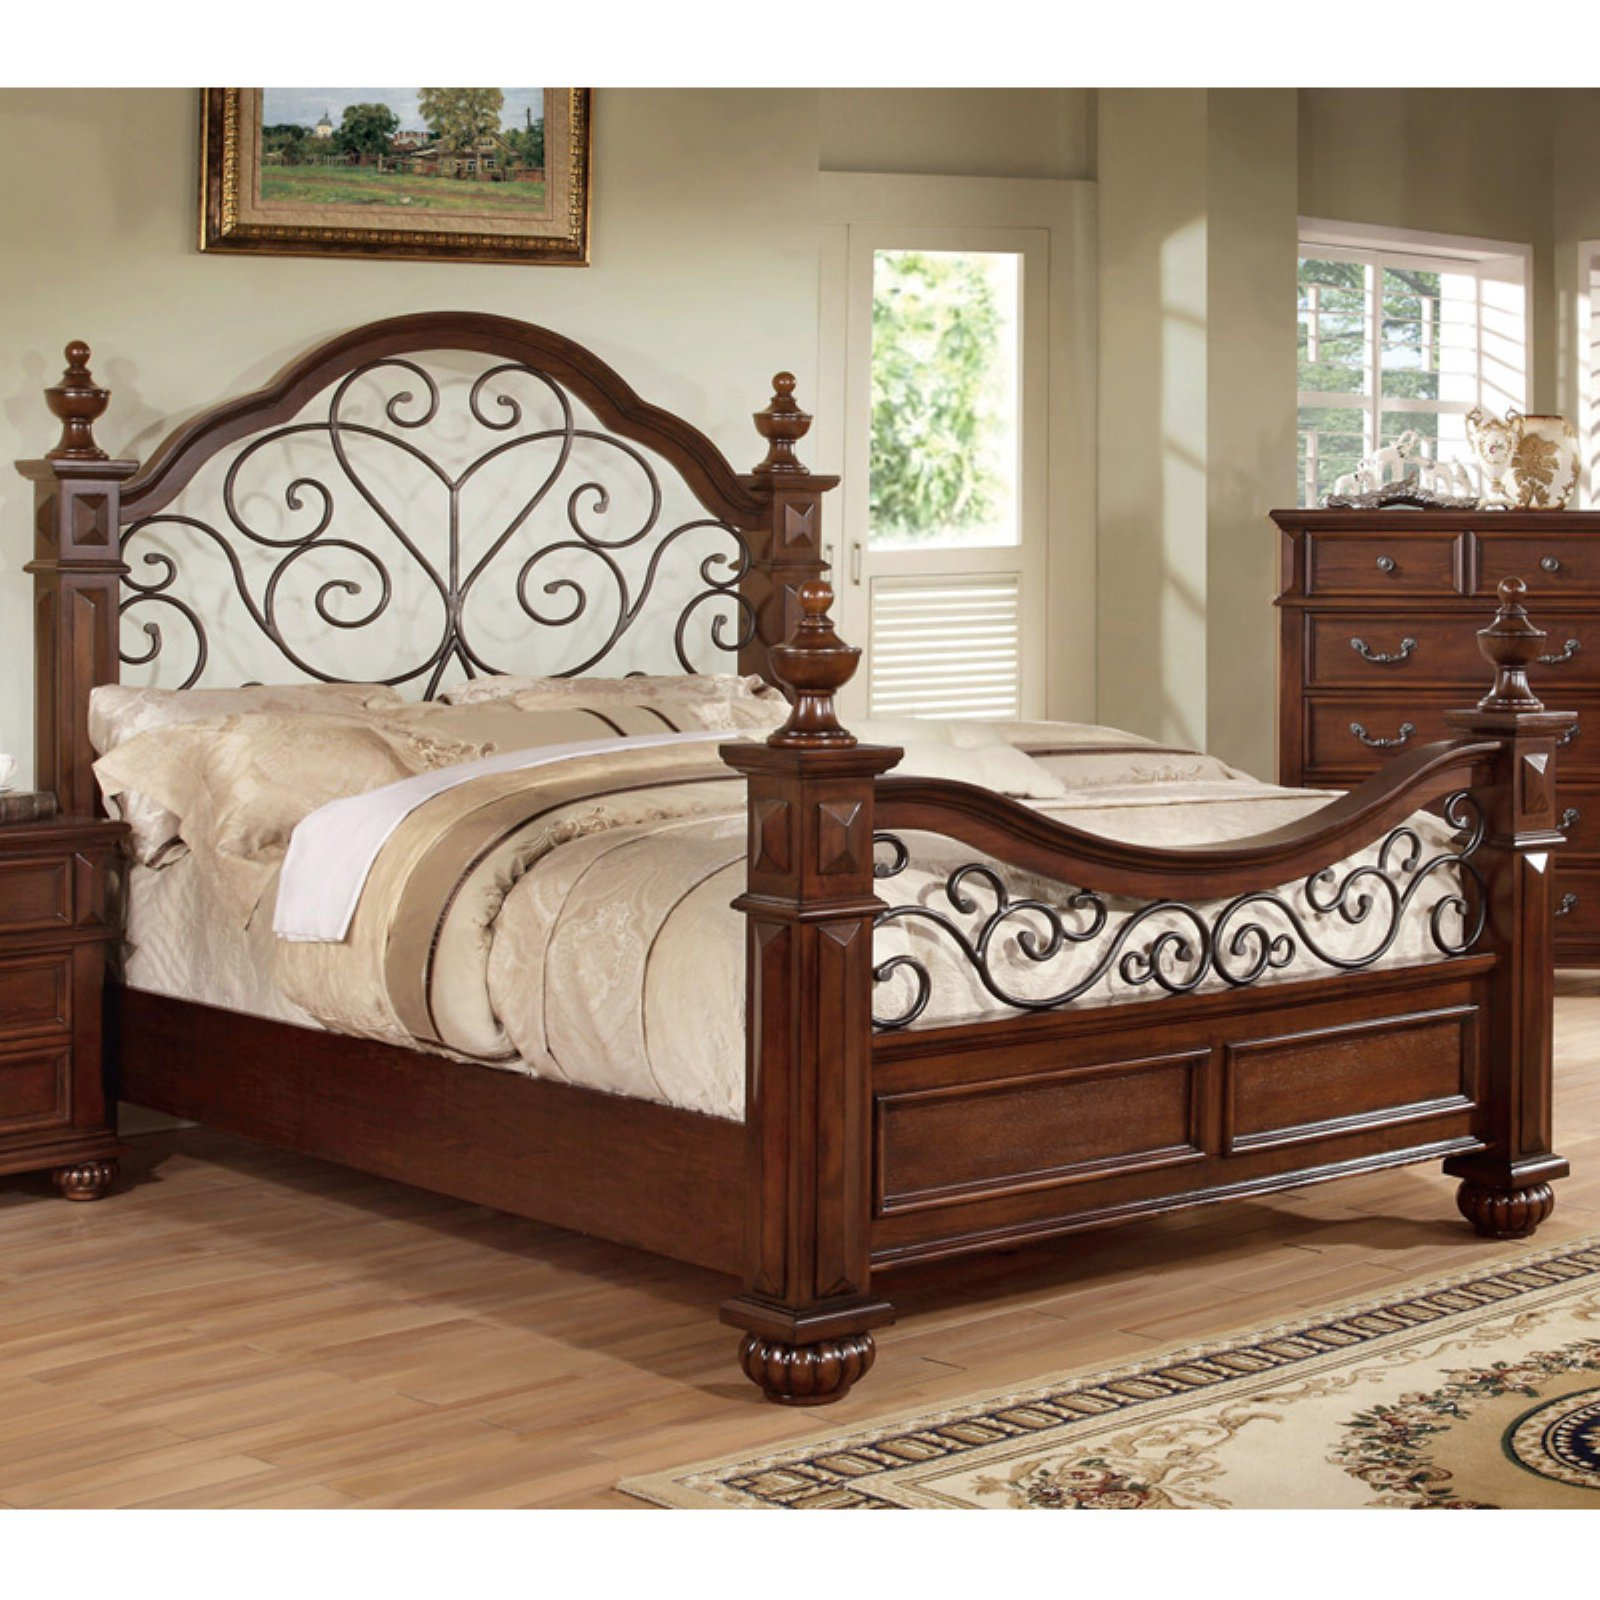 Furniture of America Spiral Stranda Mansion Poster Bed